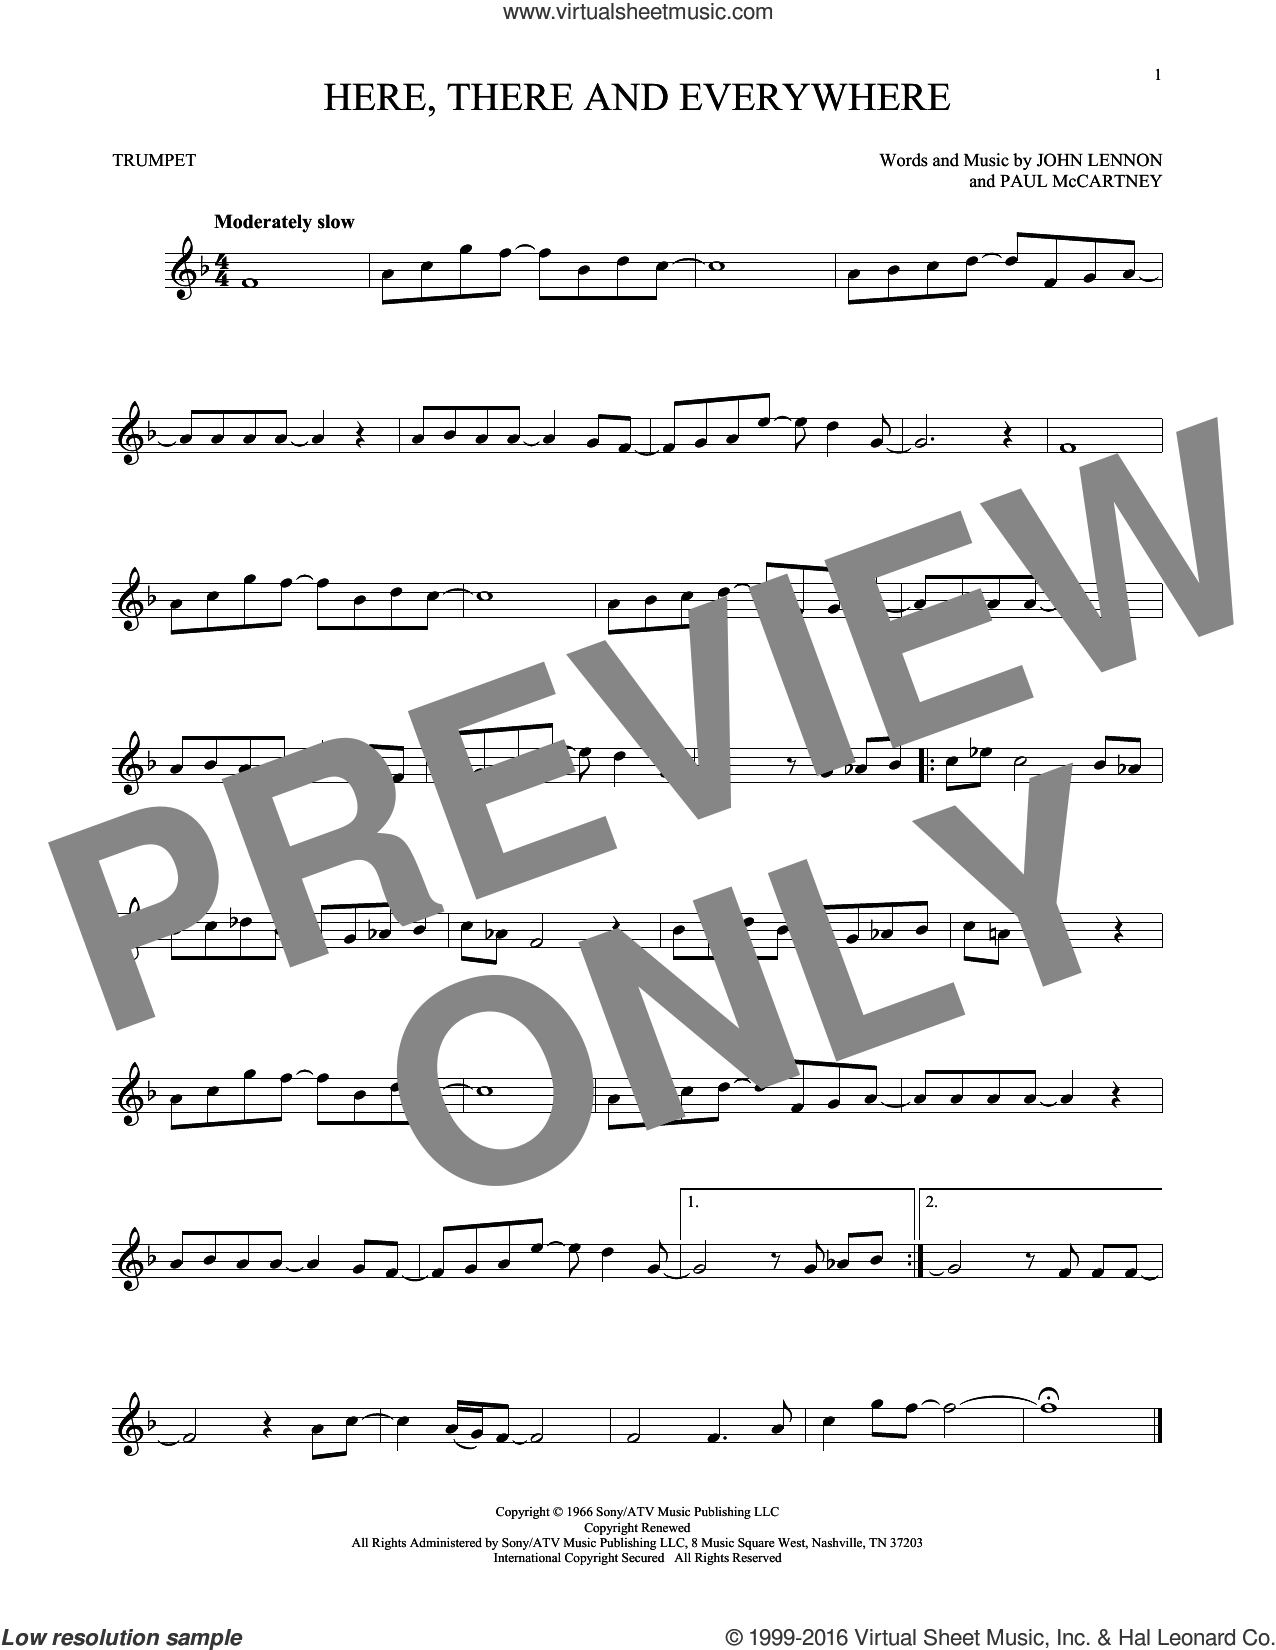 Here, There And Everywhere sheet music for trumpet solo by The Beatles, George Benson, John Lennon and Paul McCartney, intermediate skill level